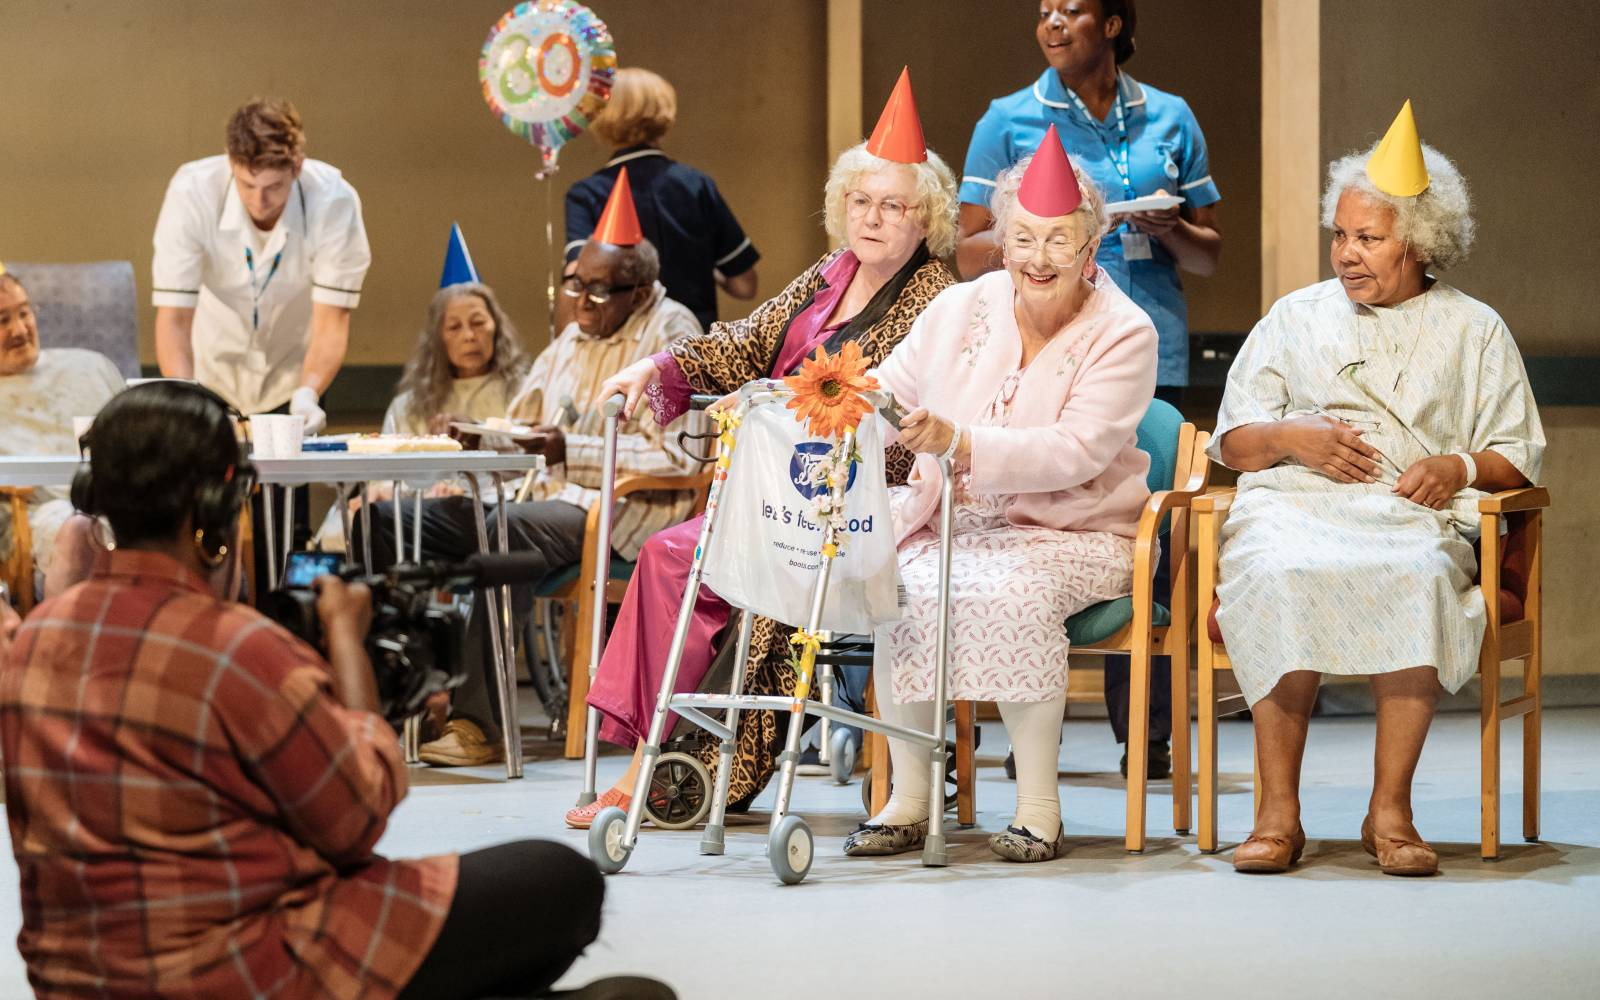 Elderly patients sit on chairs in a hospital. They are wearing paper party hats. Medical staff attend to them. In the foreground, with her back to the camera, a camerawoman films the scene